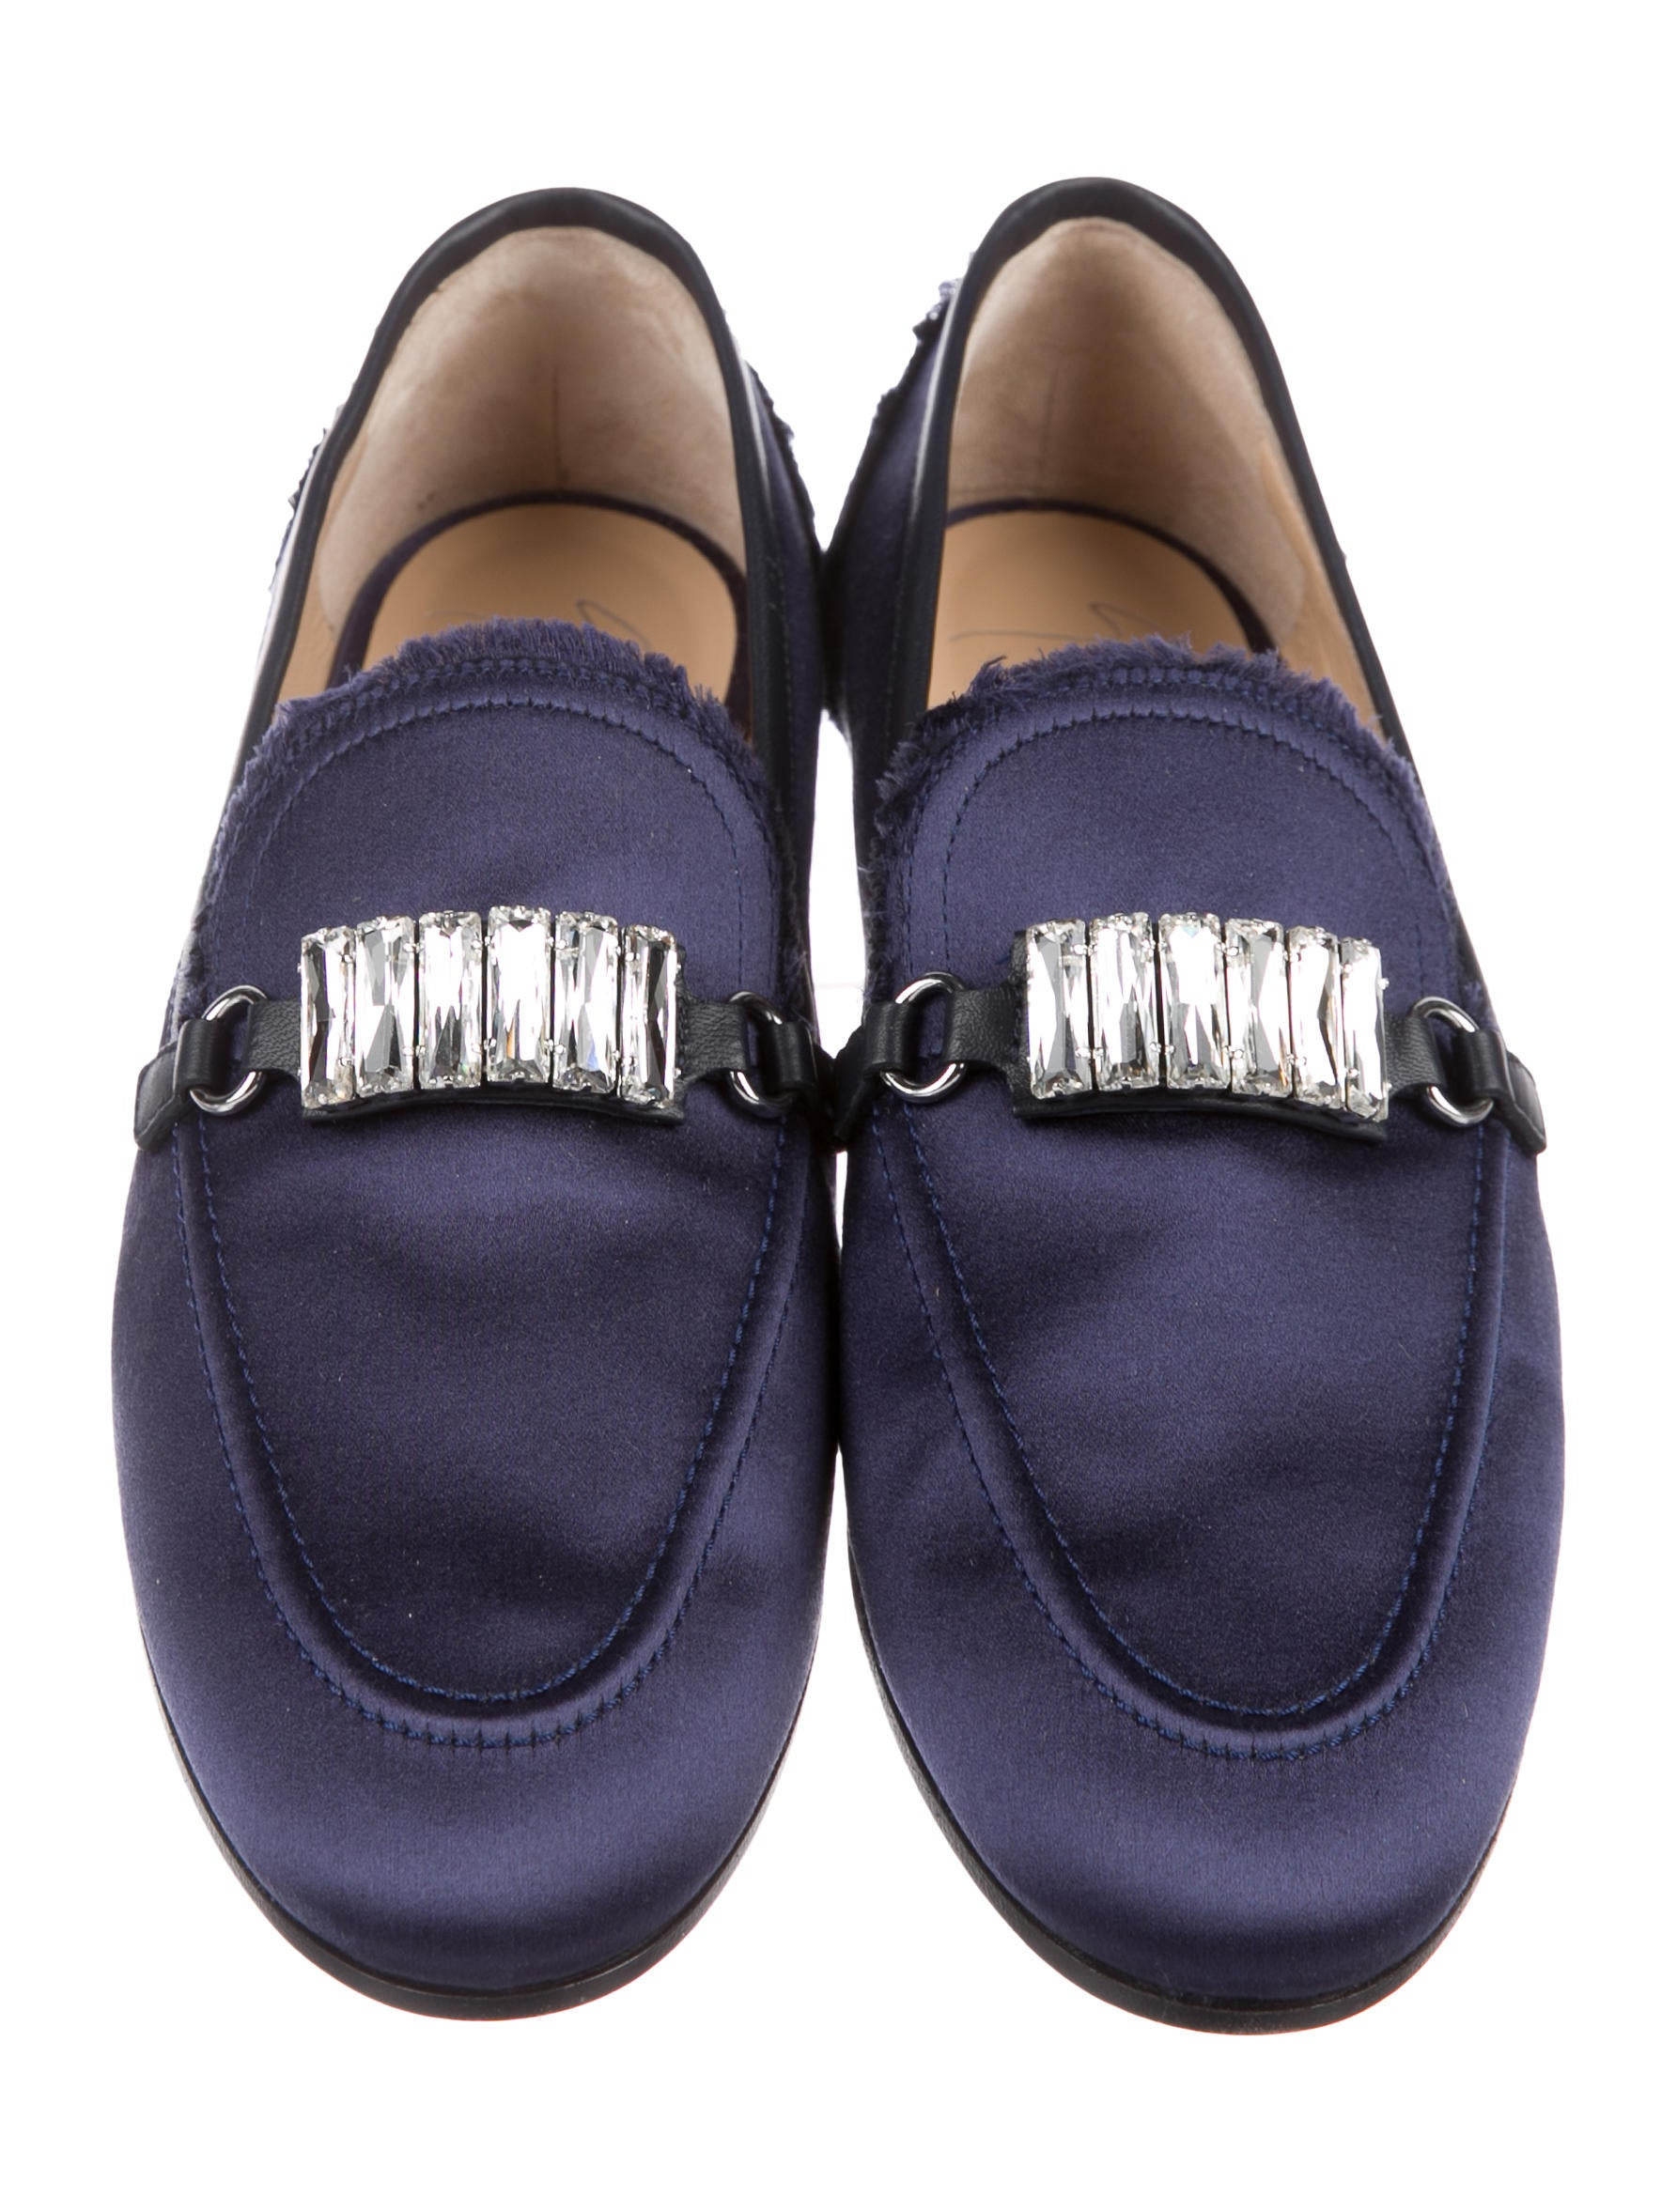 factory outlet cheap price Giuseppe Zanotti Letizia Satin Loafers w/ Tags clearance for nice store sale online best cheap price 5IlPfc4PK